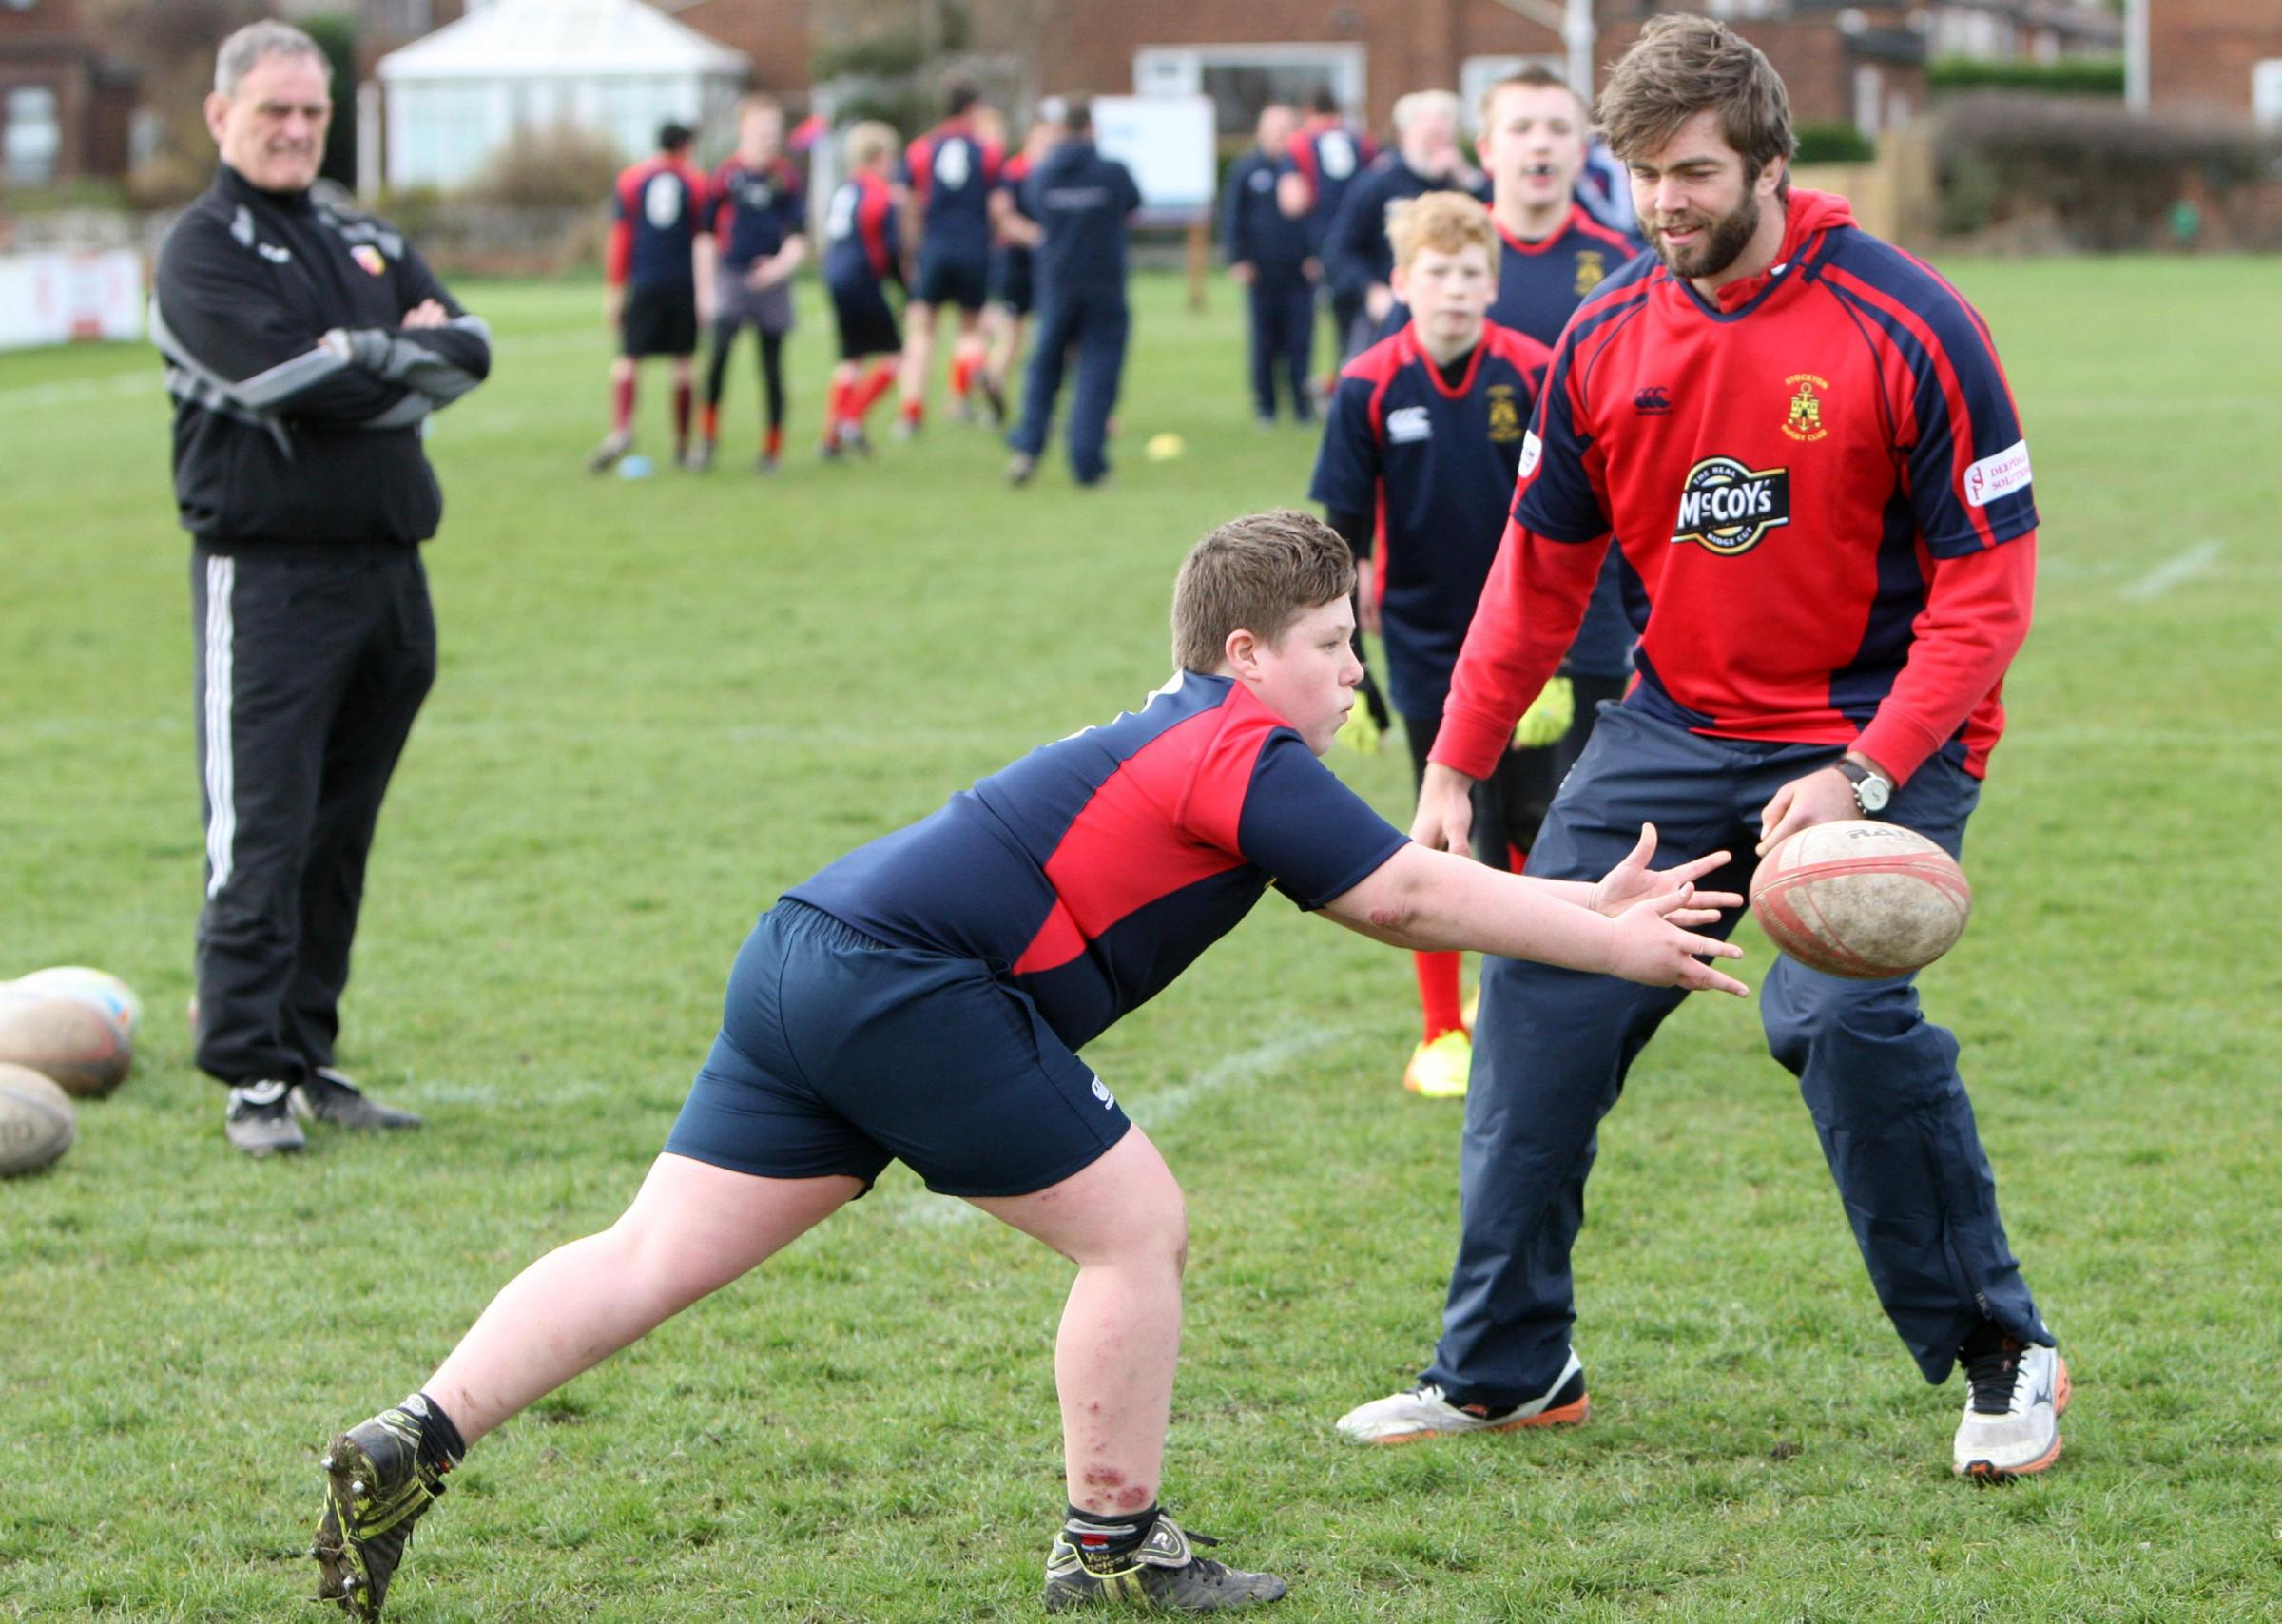 BACK HOME: British and Irish Lions rugby union star Geoff Parling takes a training session for youngsters at Stockton Rugby Club where he started his career – Picture: Tom Banks